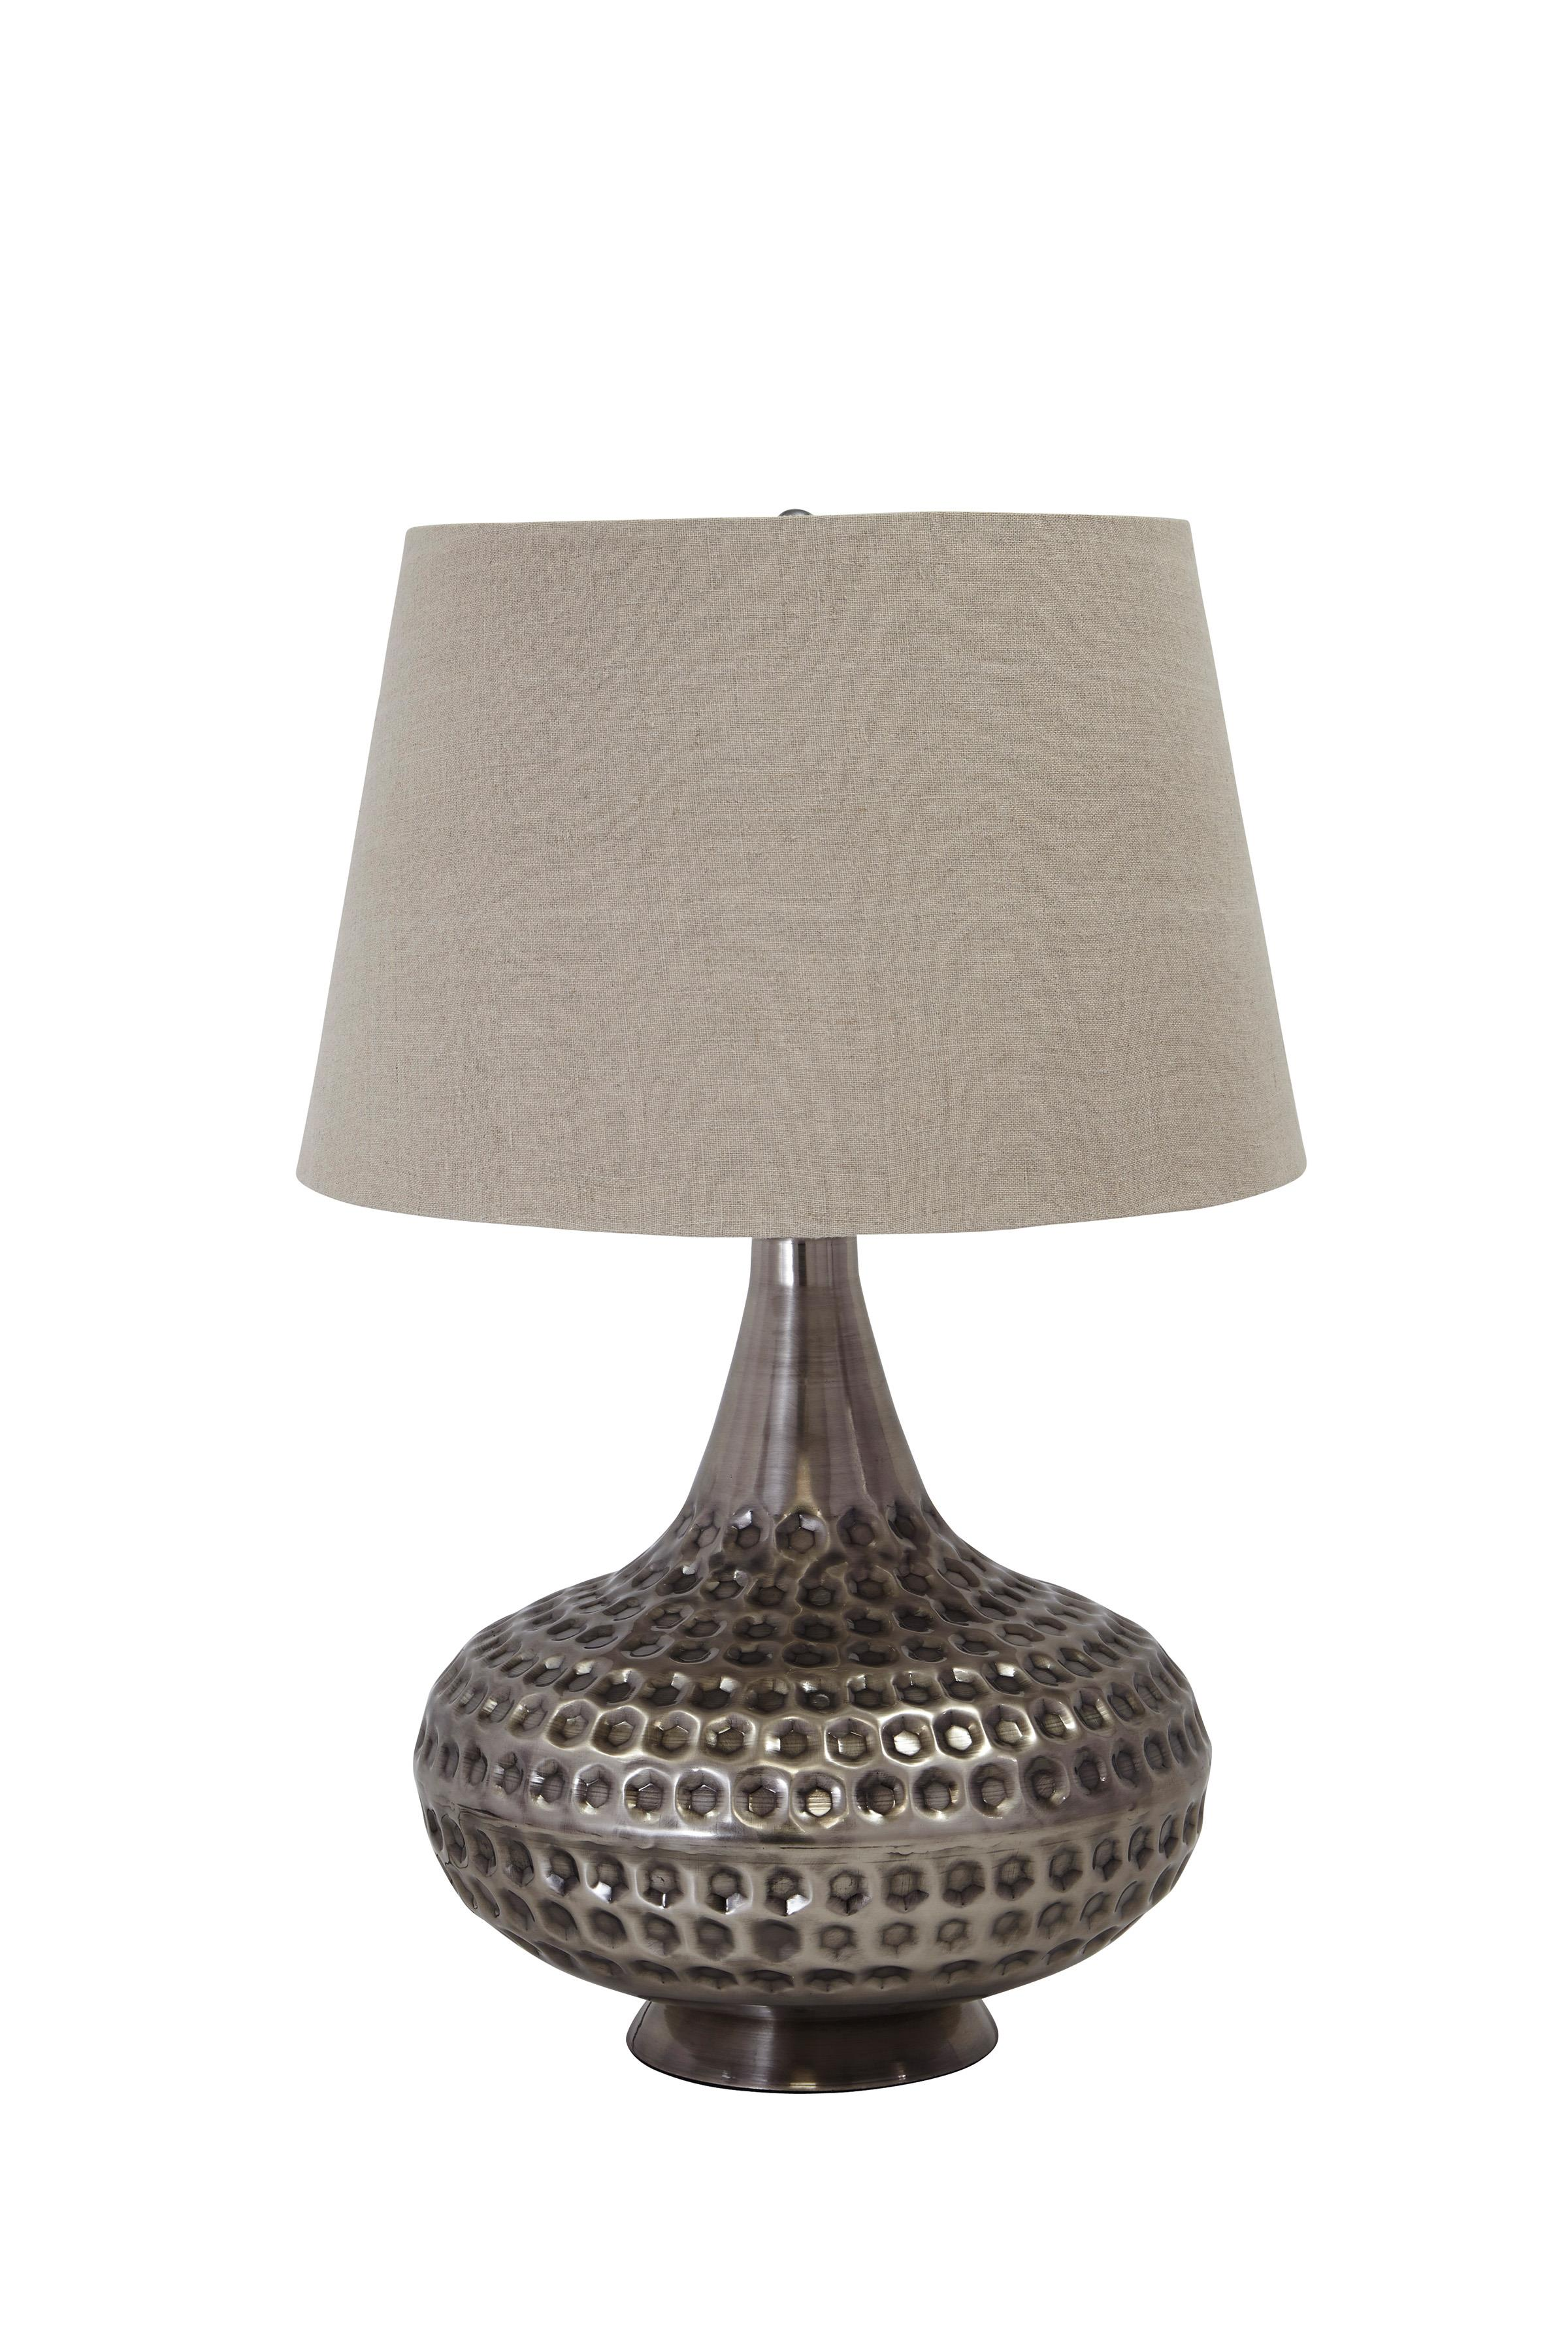 Signature Design by Ashley Lamps - Contemporary Sarely Metal Table Lamp - Item Number: L207844